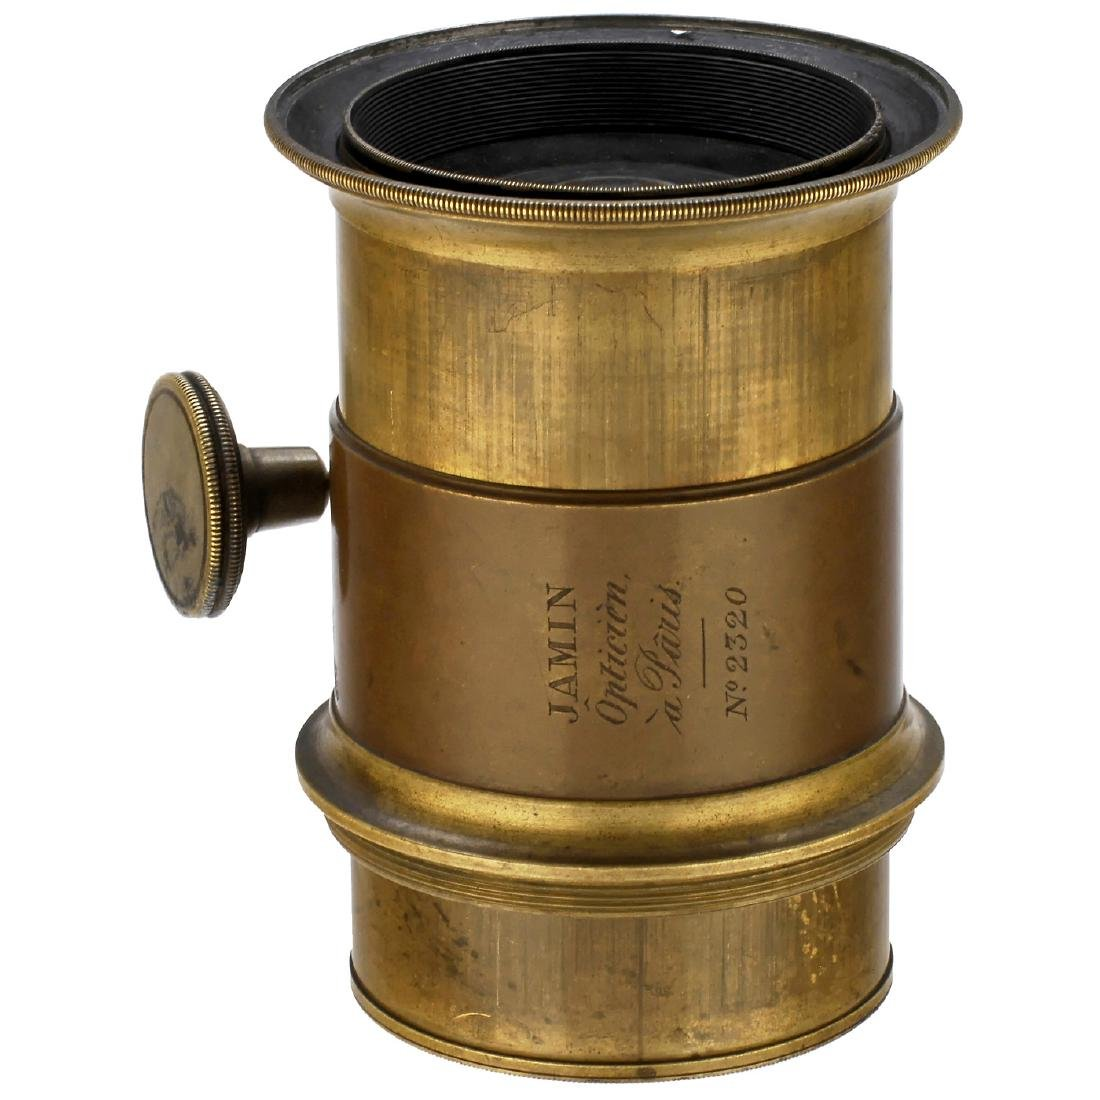 Early Jamin Portrait Lens (Petzval-Type), c. 1848